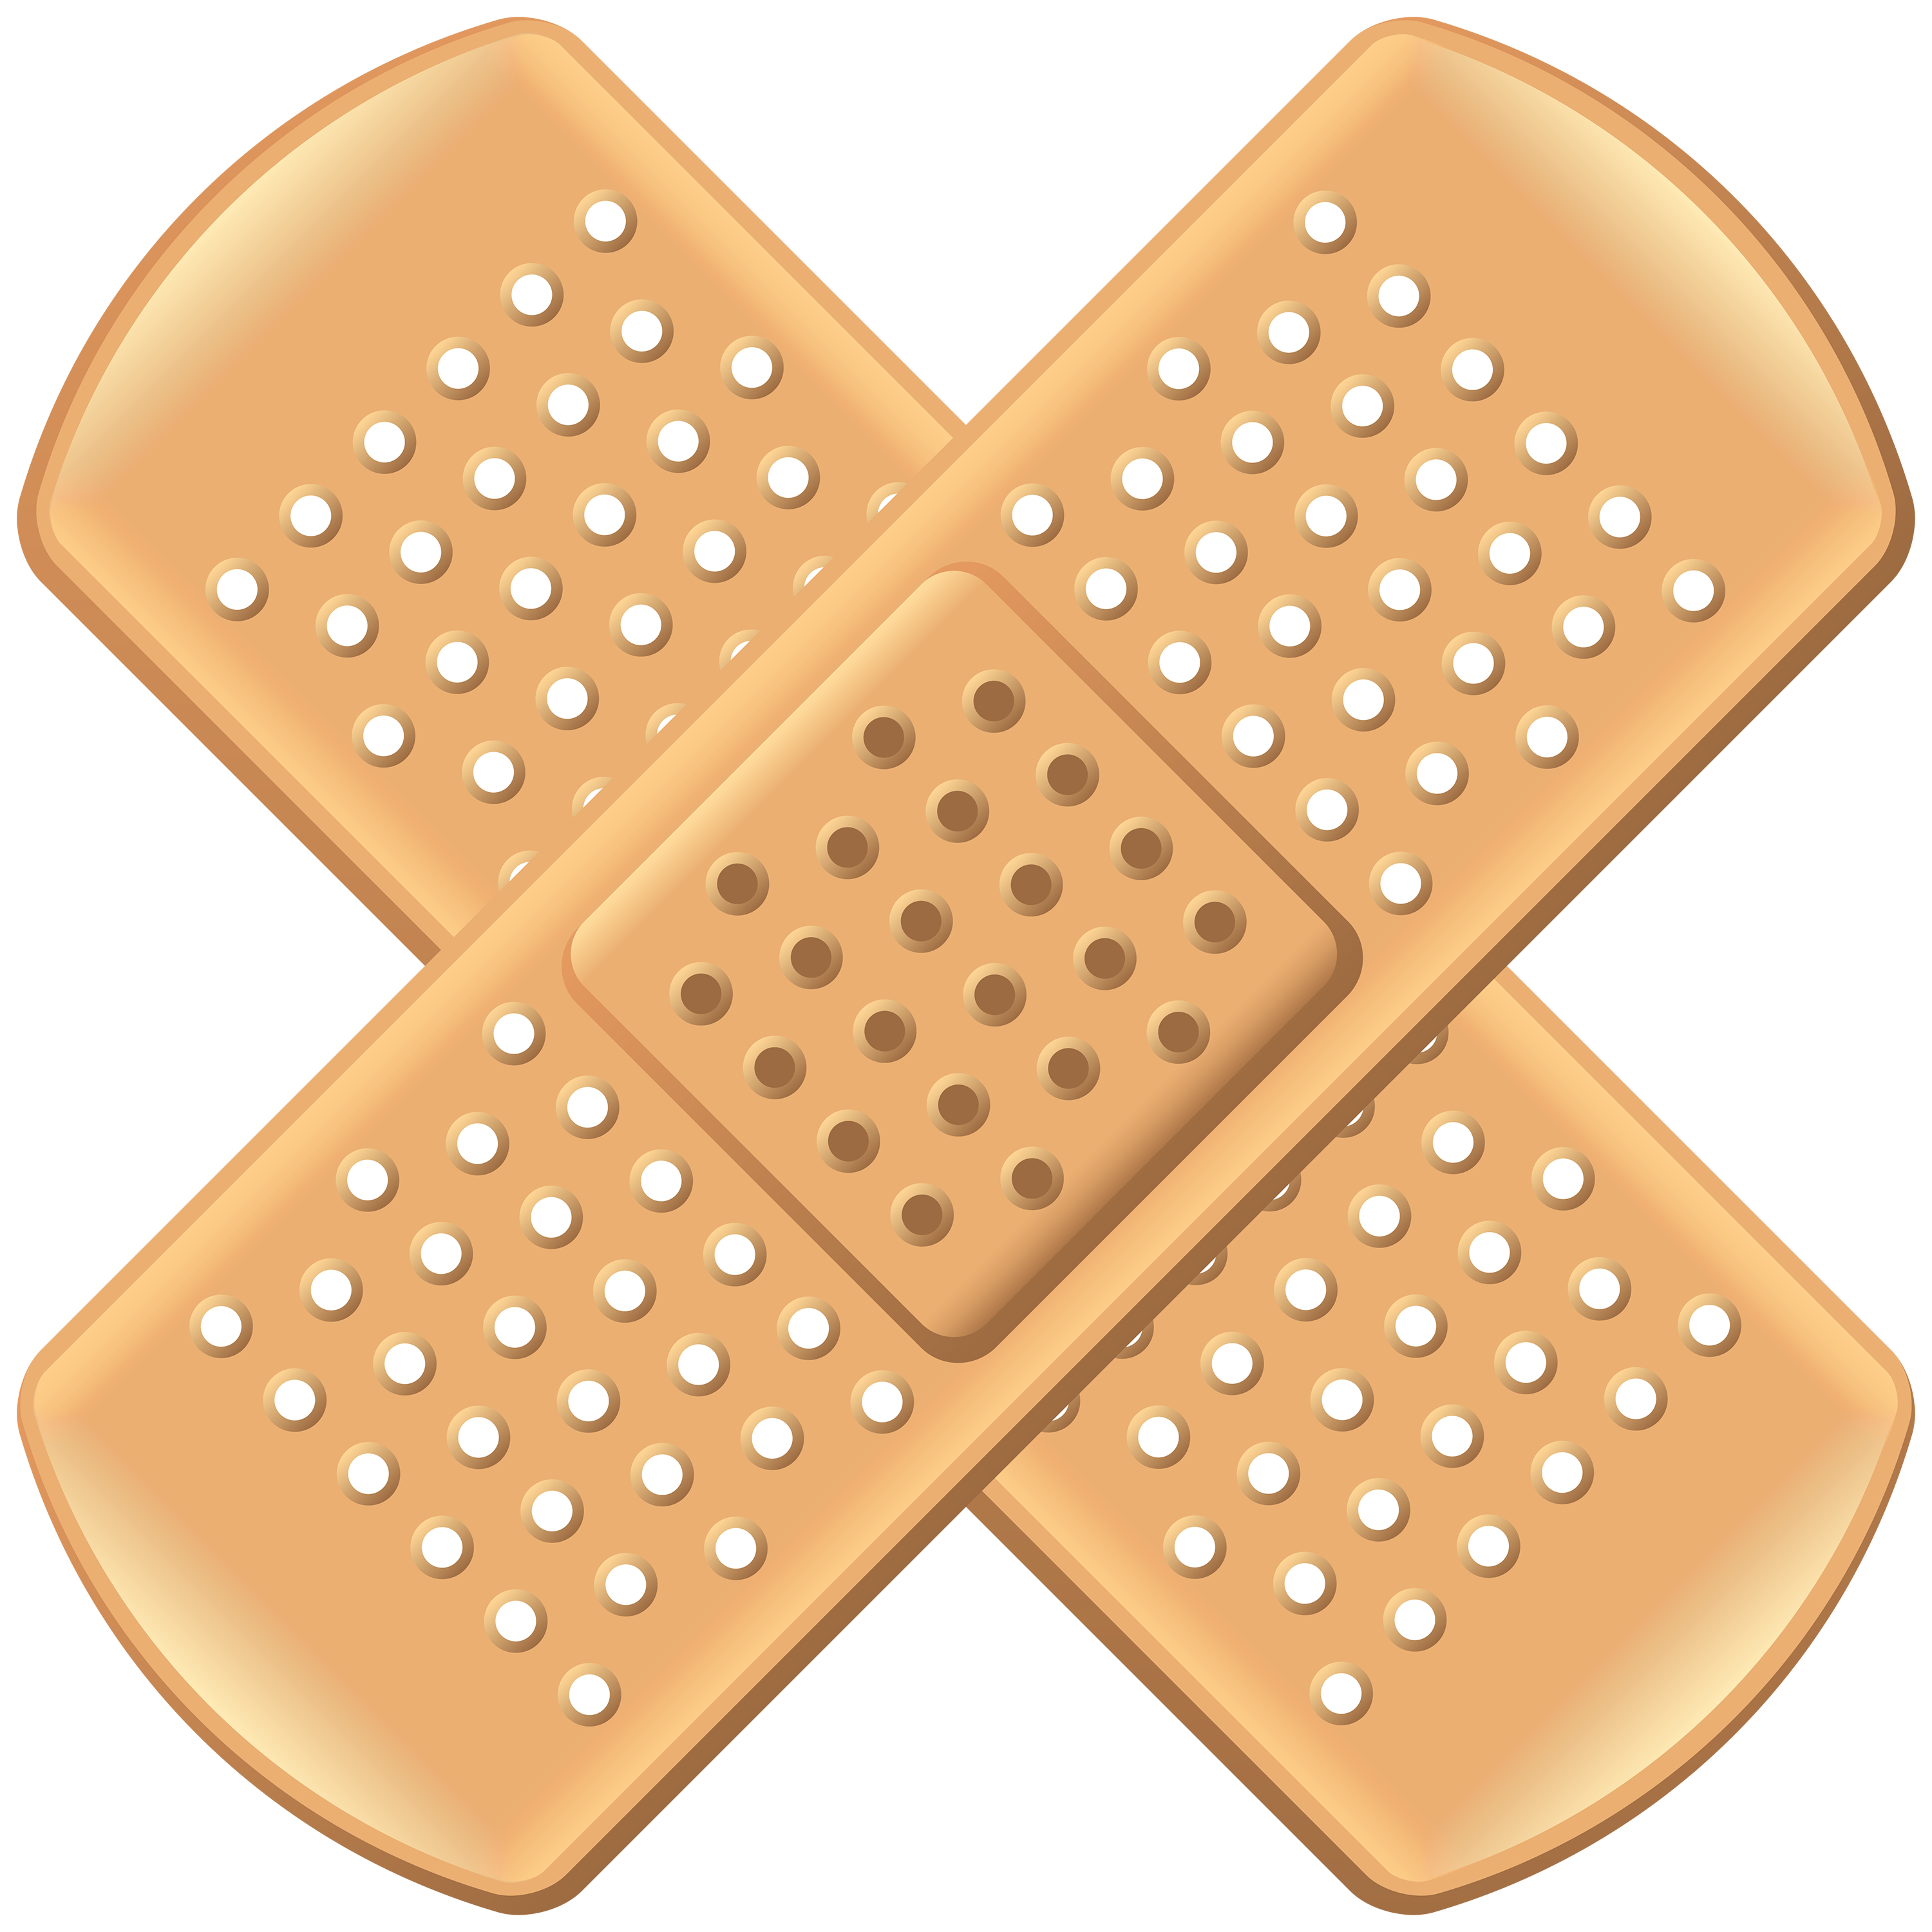 Nuts clipart head. Bandage group png best